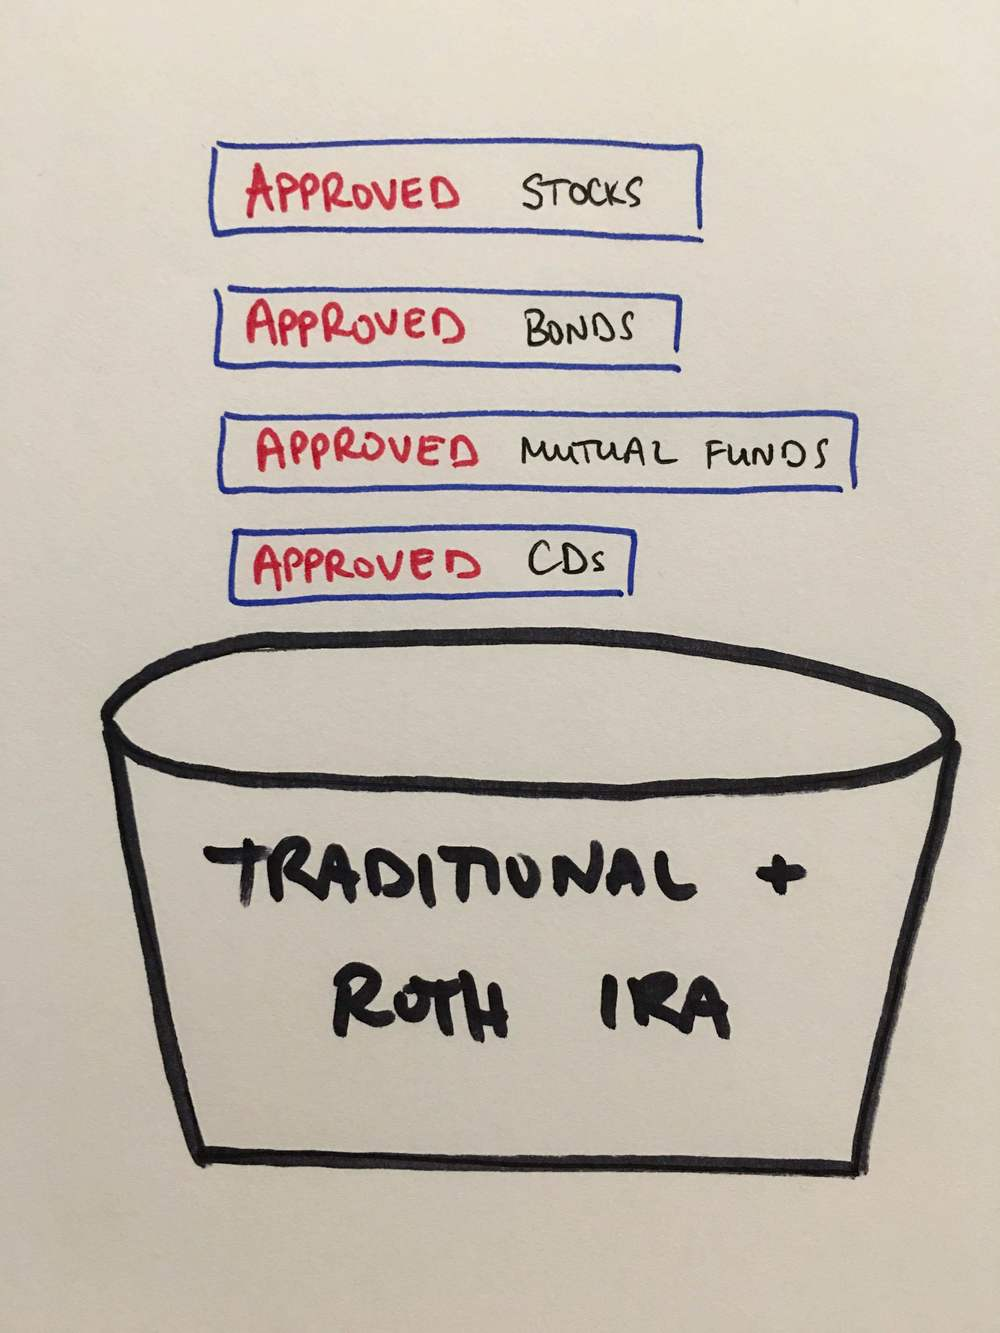 A traditional or Roth IRA is like this bucket that you can only put approved stocks, bonds, mutual funds, and CDs, into.